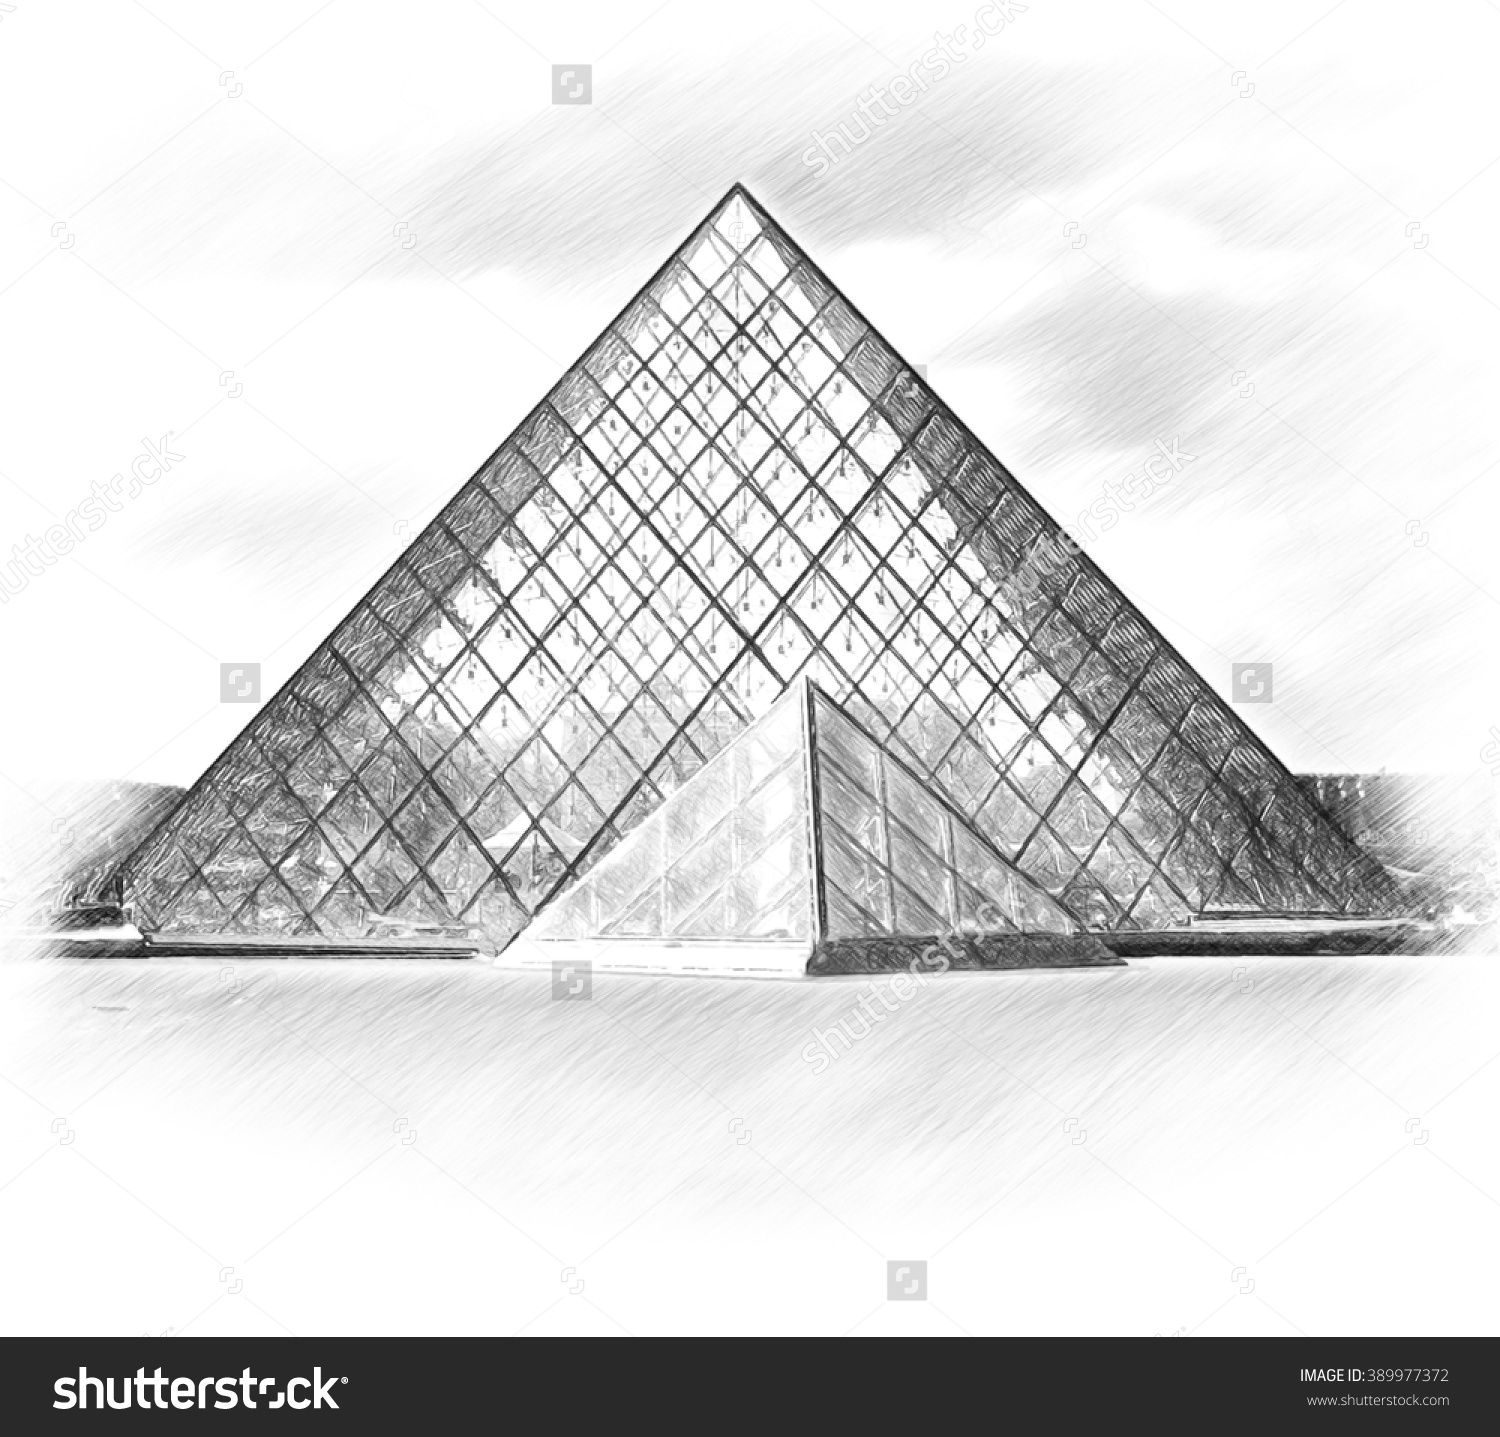 Pyramid. Louvre Museum. Paris. Stock Photo 389977372 : Shutterstock.